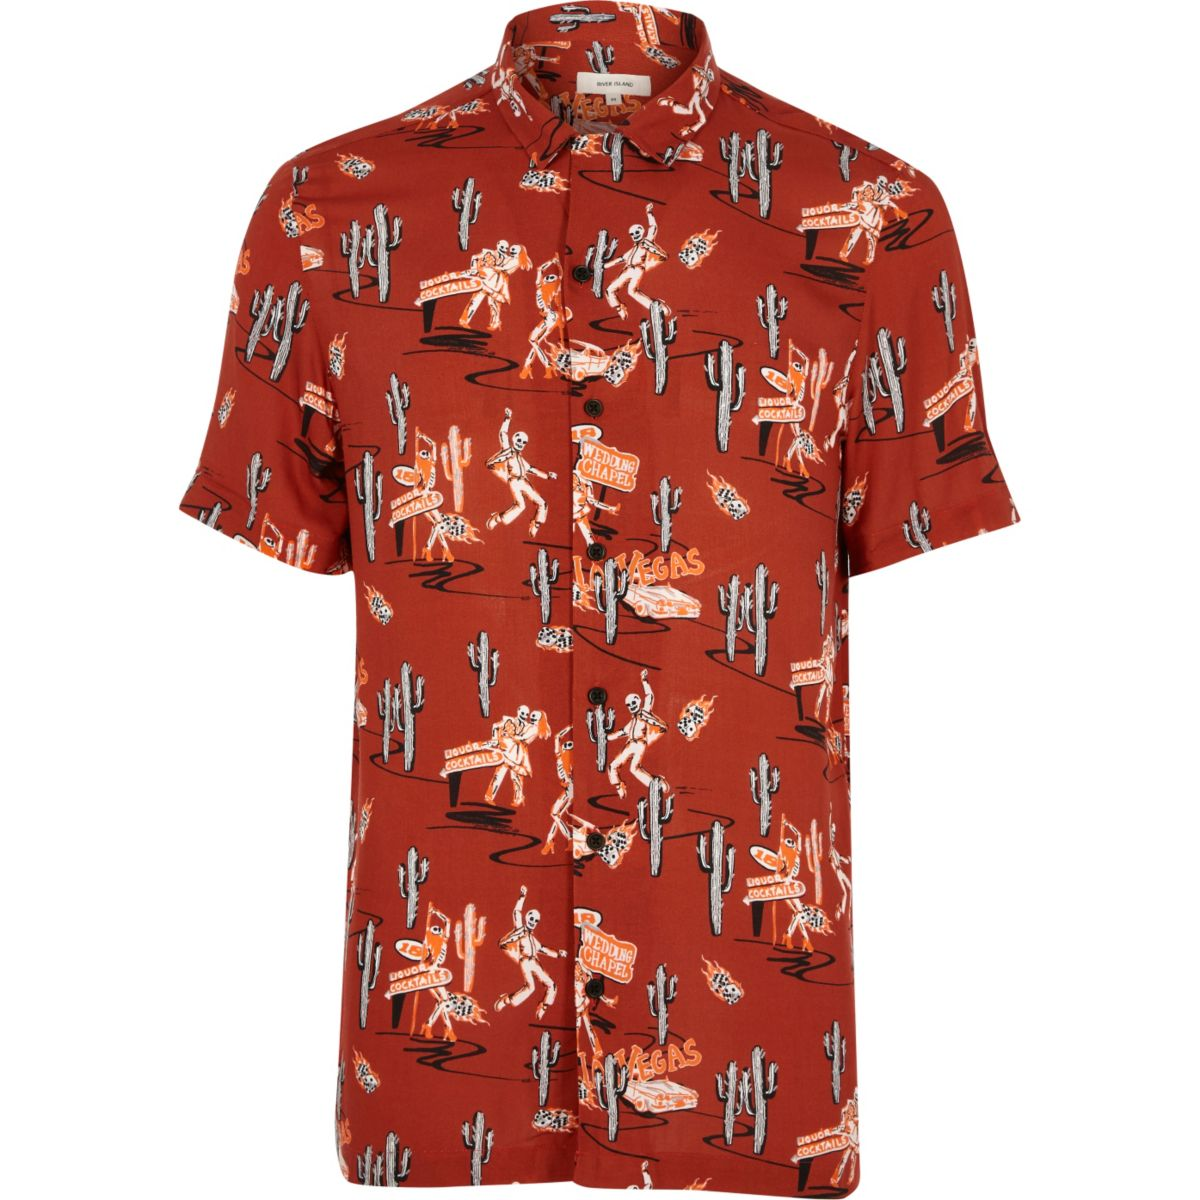 Red day of the dead print short sleeve shirt